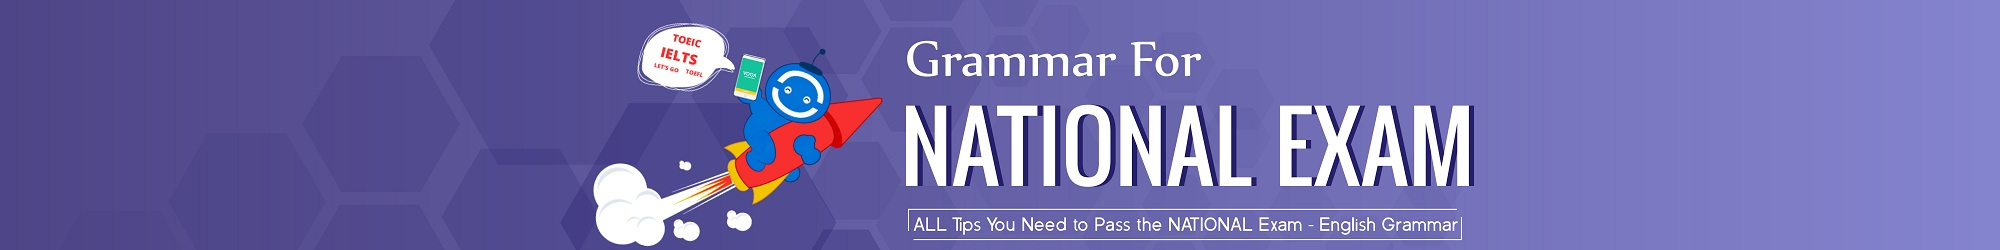 GRAMMAR FOR NATIONAL EXAM banner